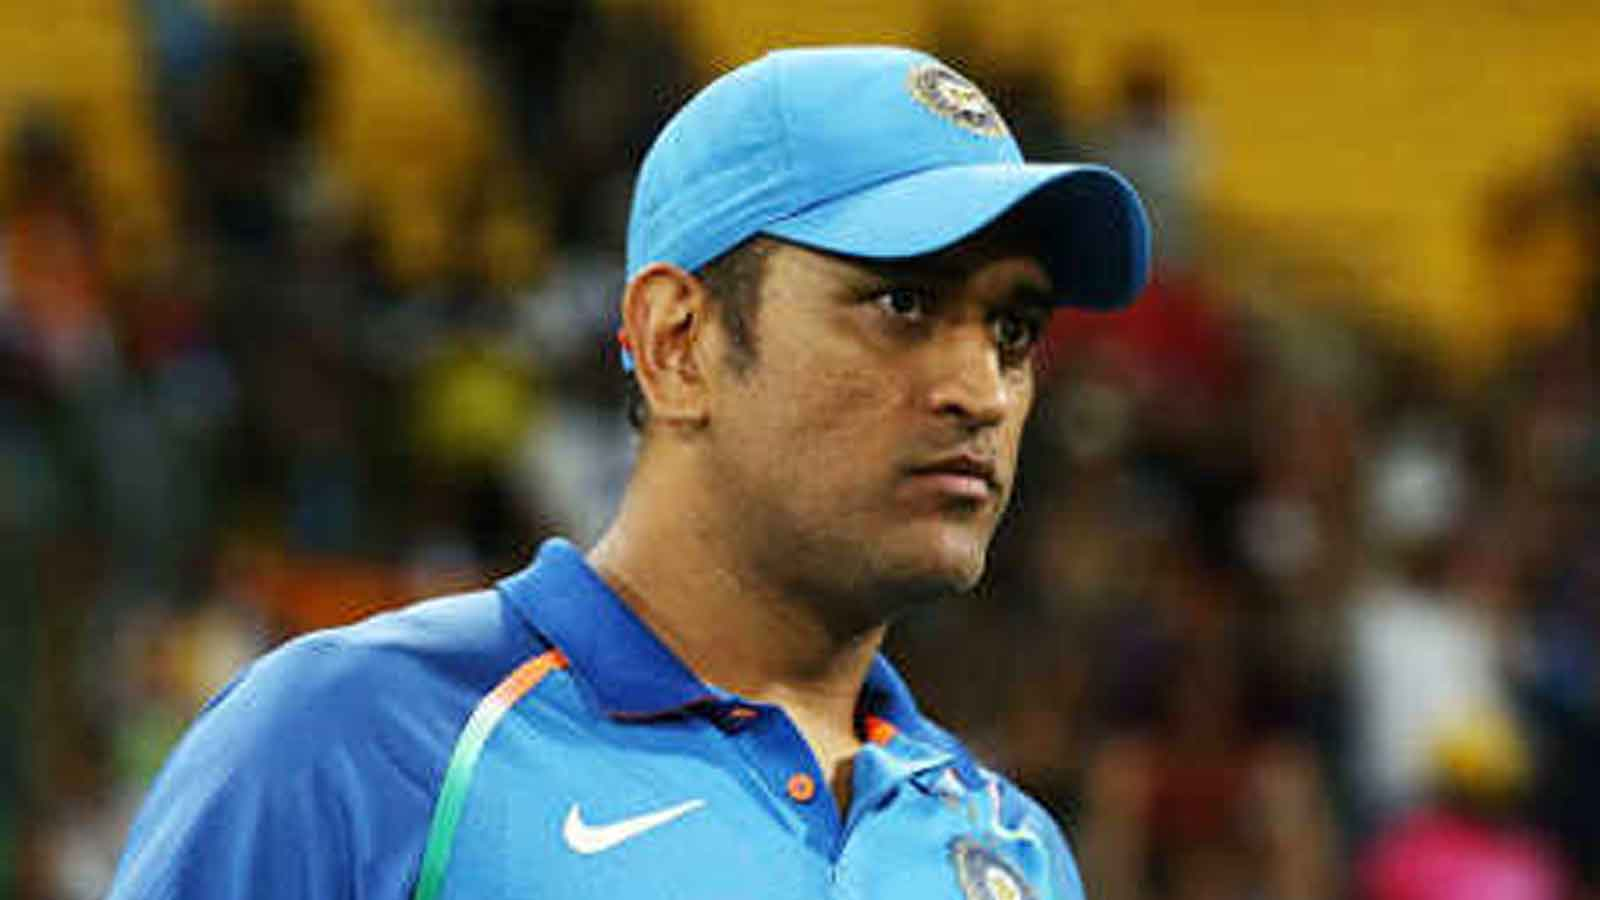 ms-dhoni-was-always-comfortable-in-his-own-skin